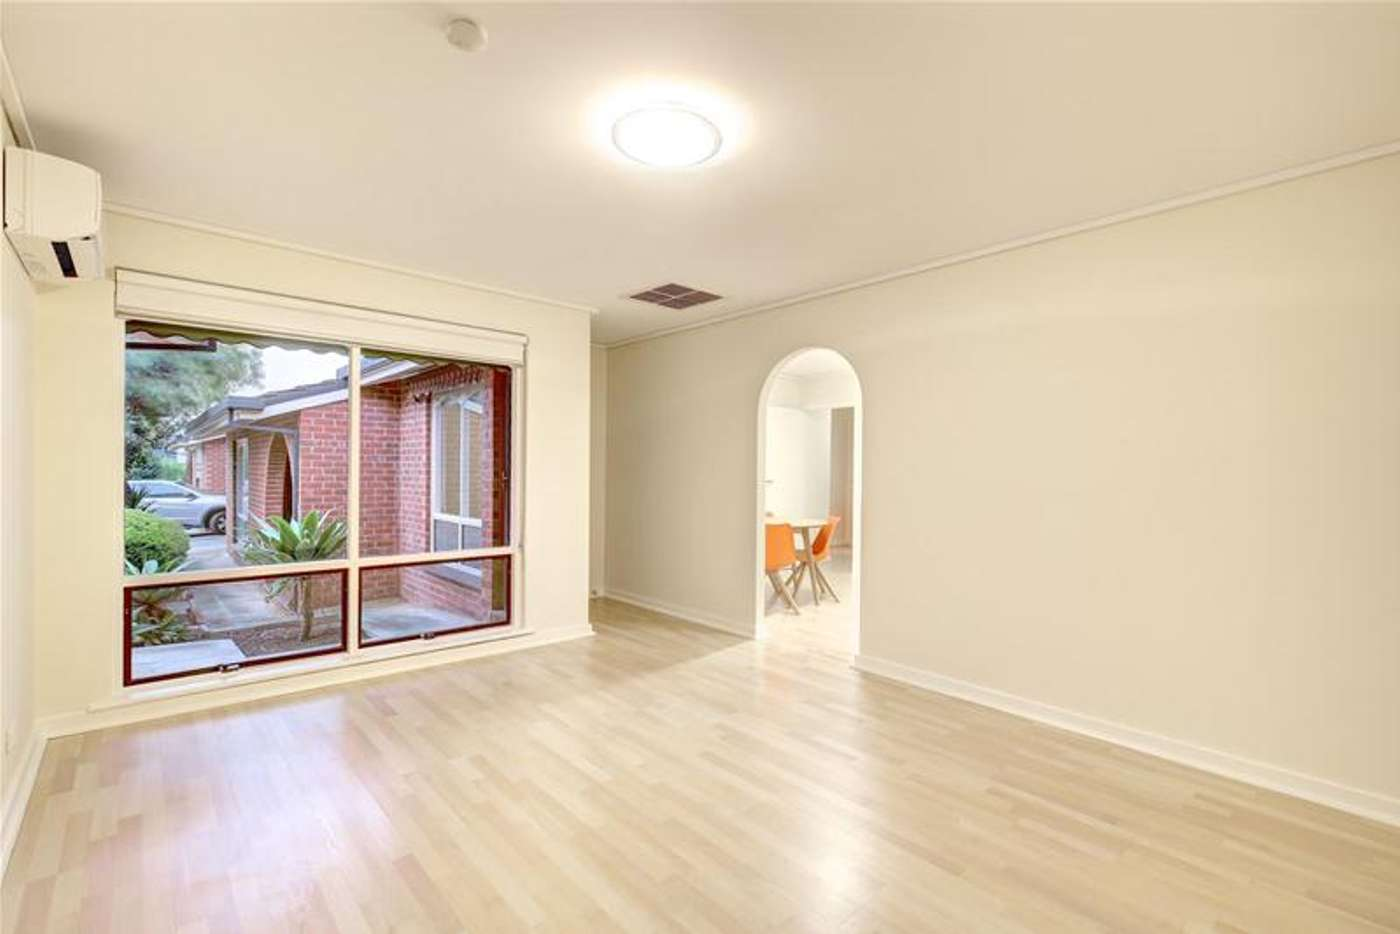 Sixth view of Homely unit listing, 4/10 Dunkley Avenue, Firle SA 5070